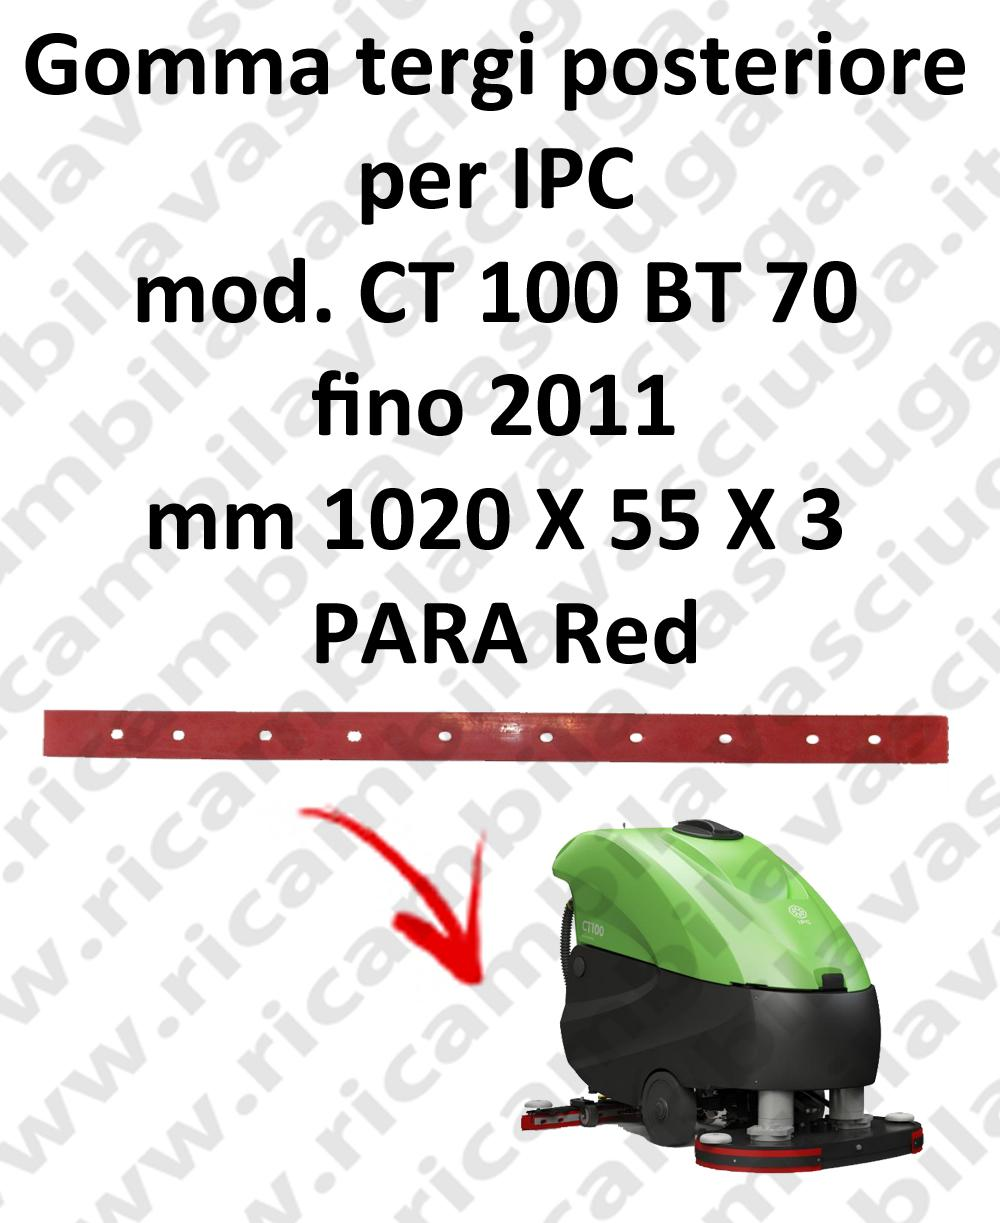 CT 100 BT 70 till 2011 squeegee rubber back for IPC